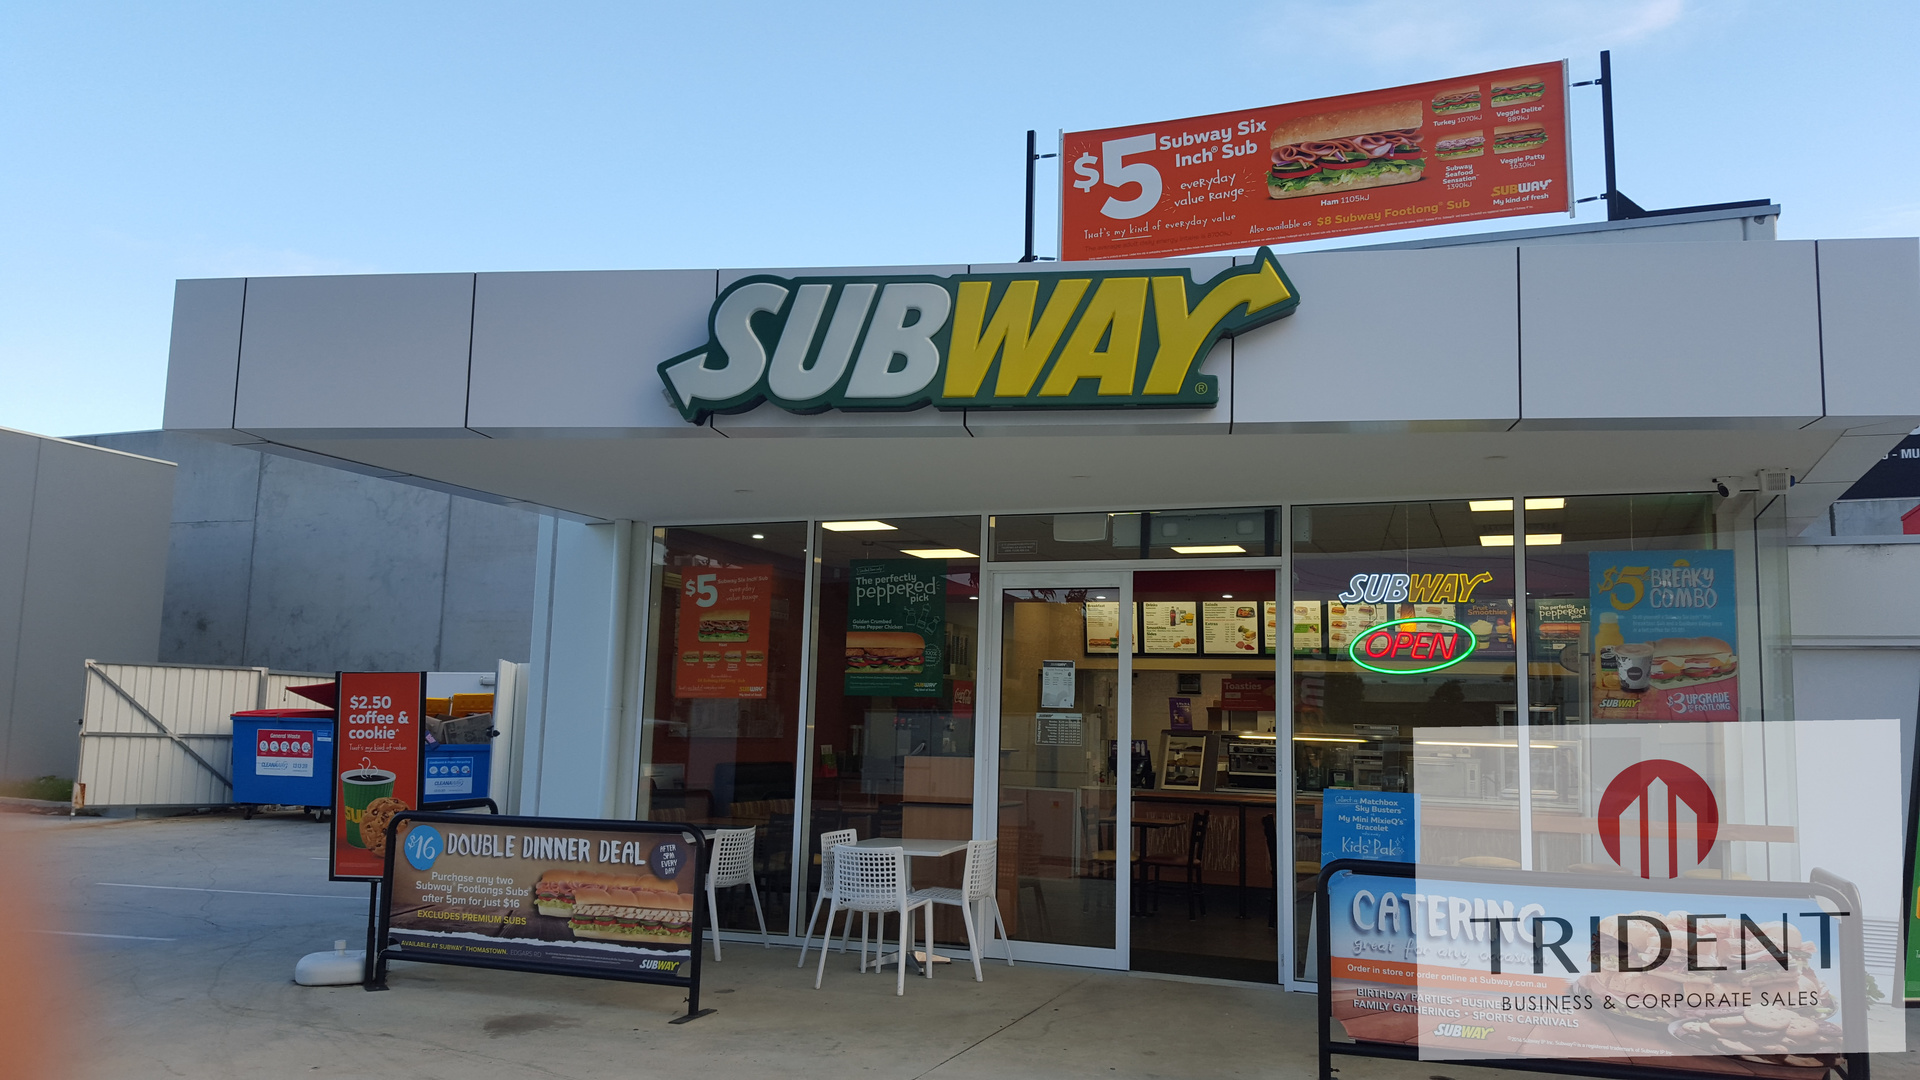 Northern Suburbs Subway Franchise for Sale Thomastown Melbourne